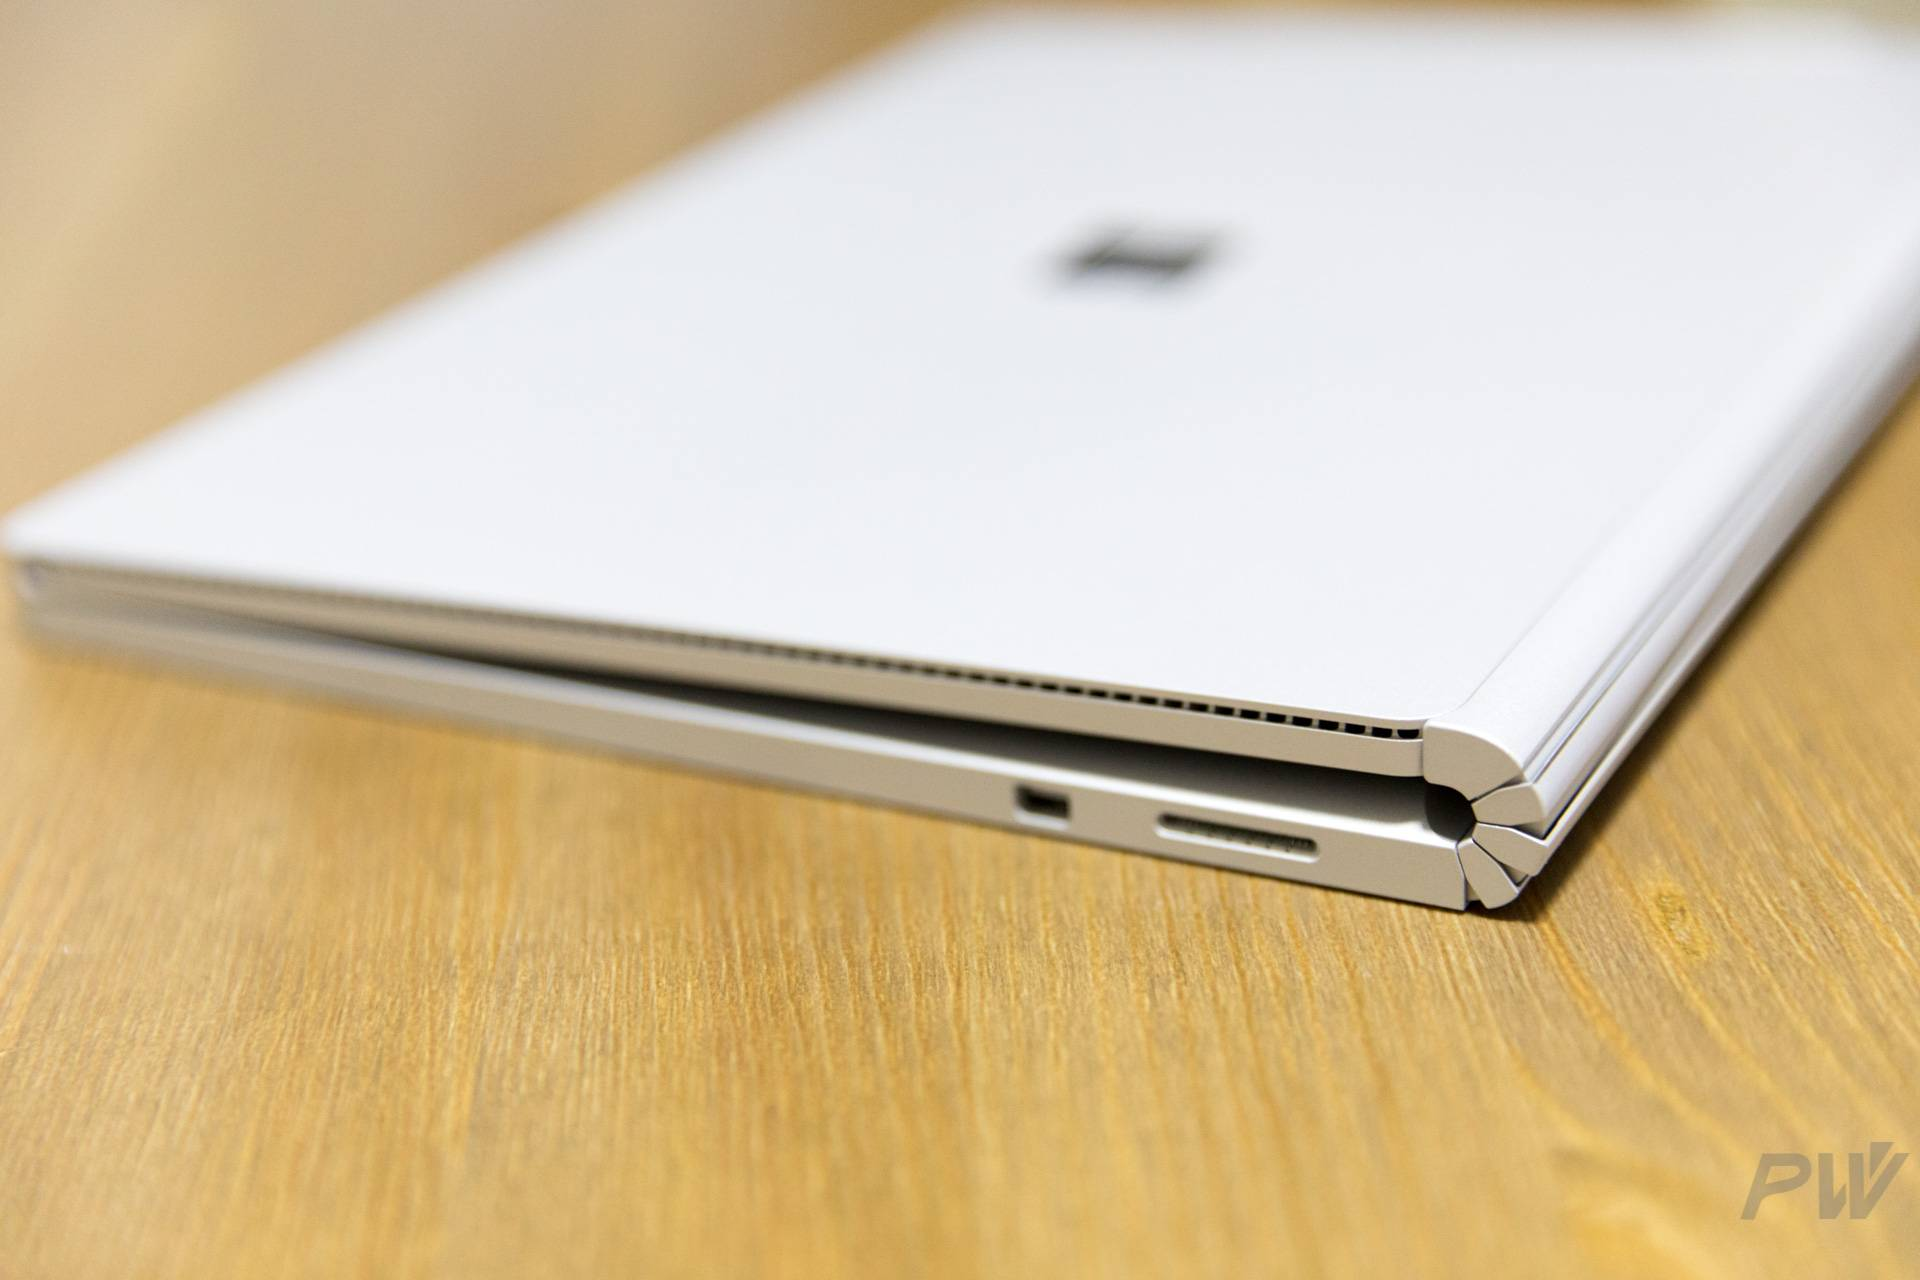 Microsoft Surface Book 2017 Photo by Hao Ying-39